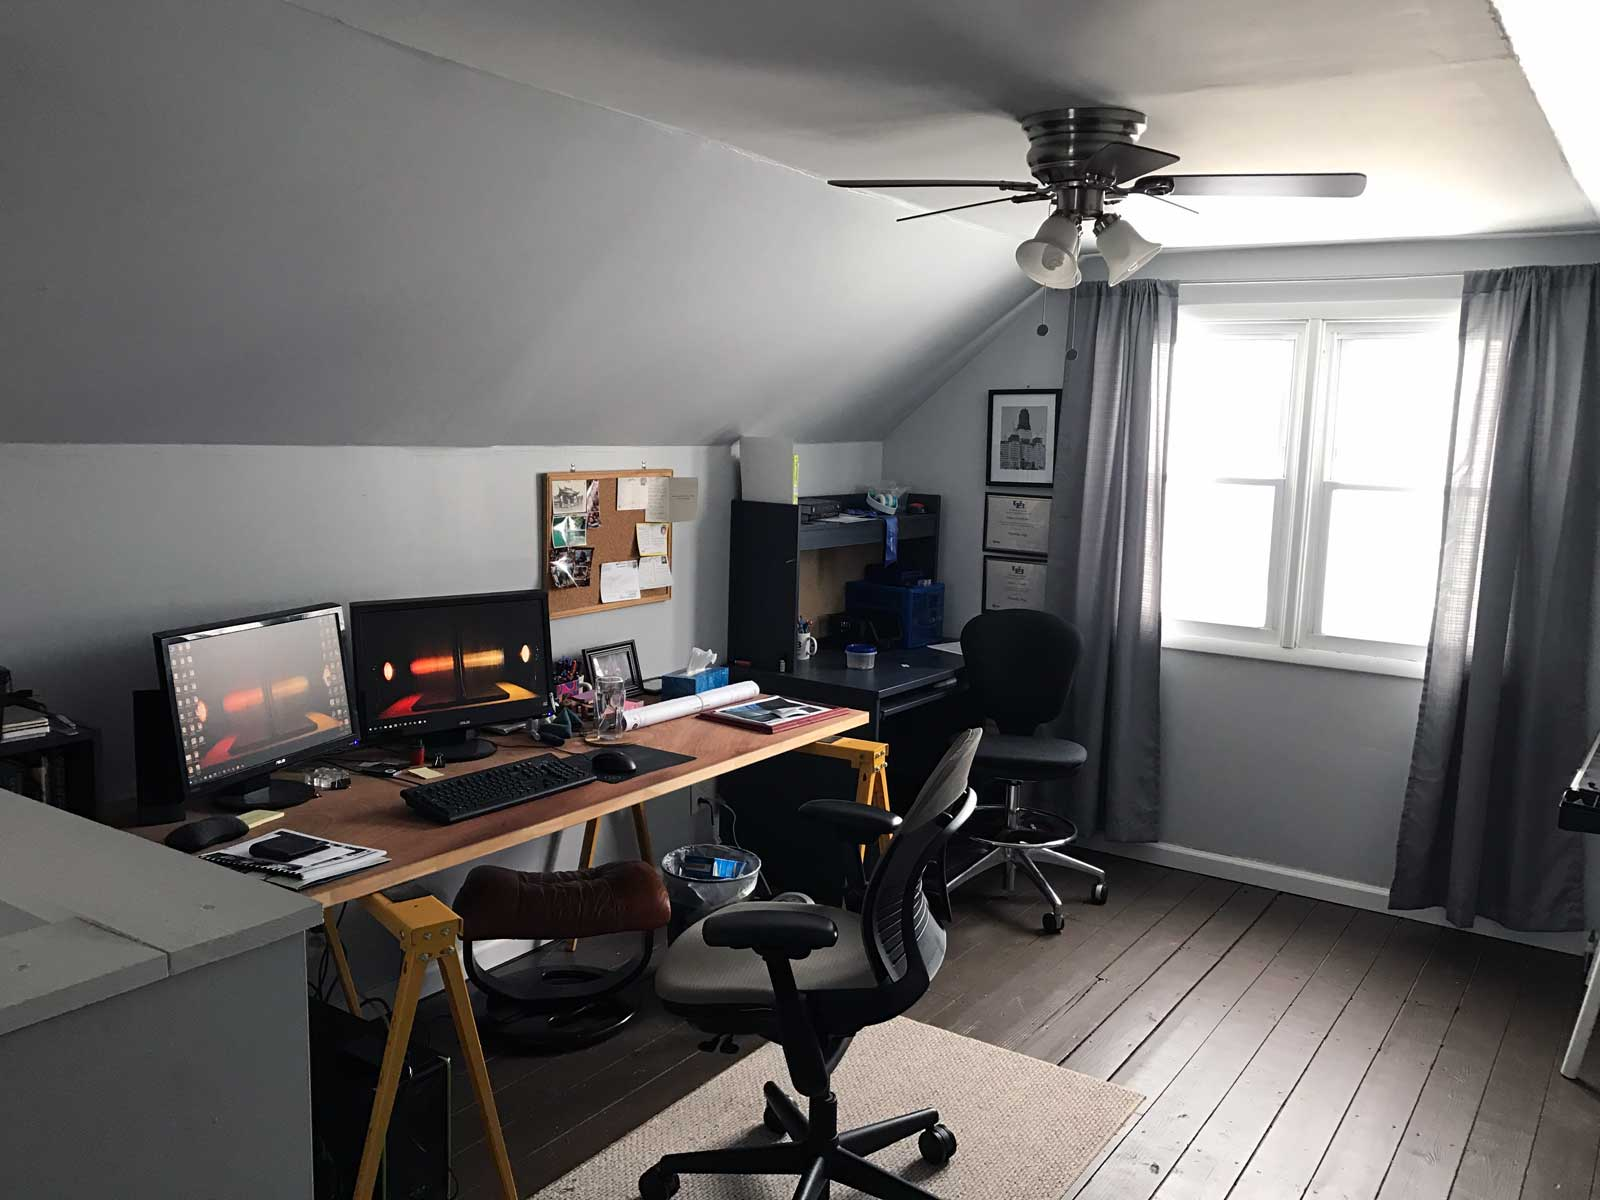 11x30 - An Architects Home and Studio